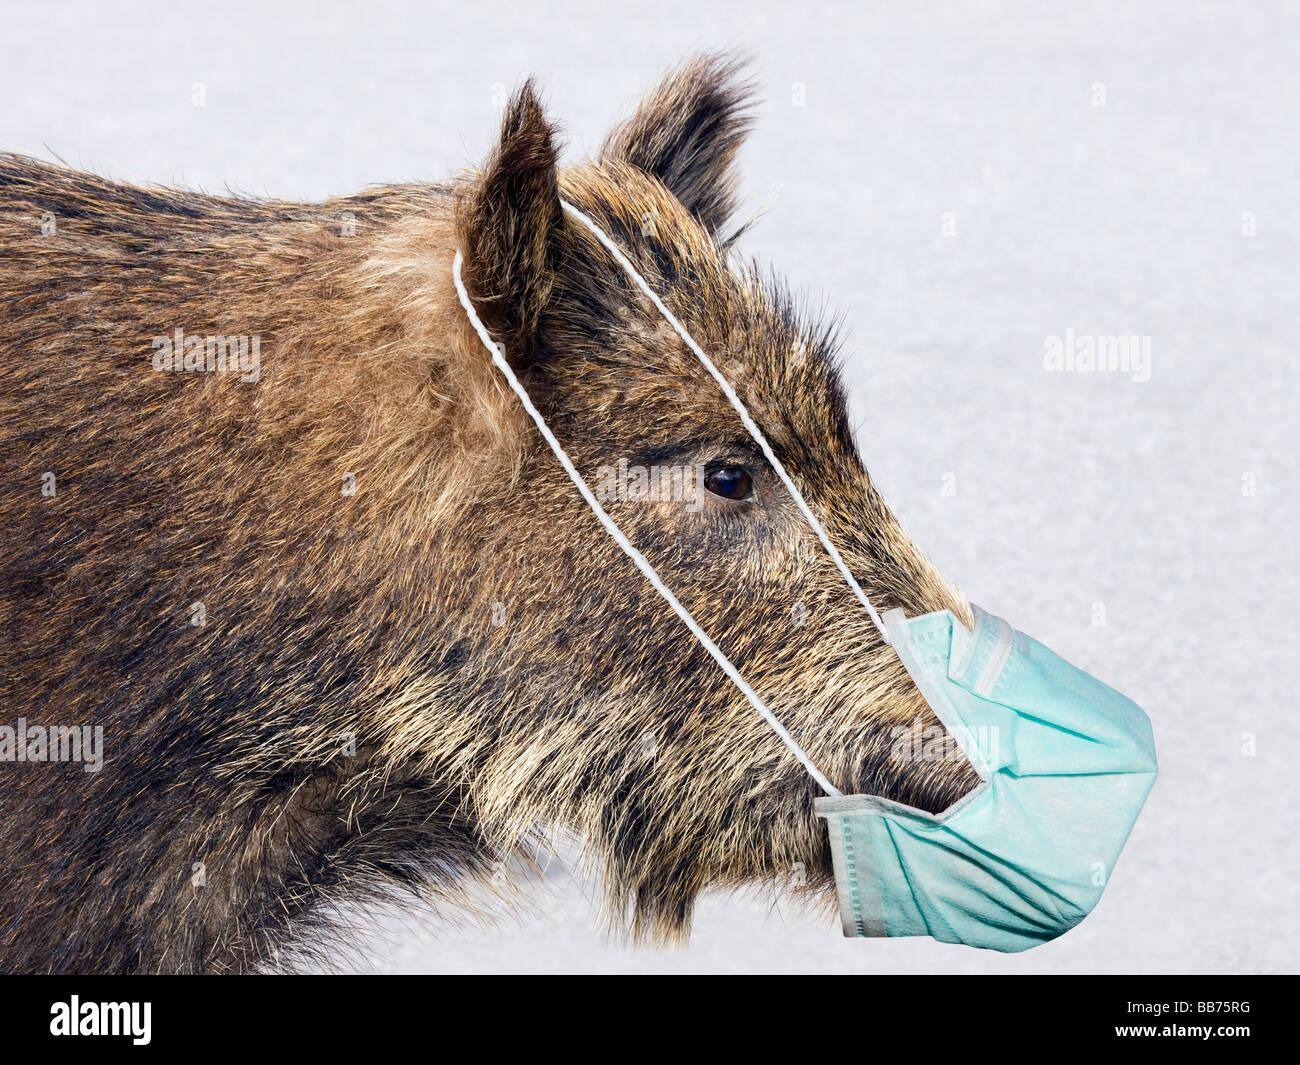 A wild boar with mouth protection against the swine flu. This image is an illustrative concept to the swine flu. - Stock Image